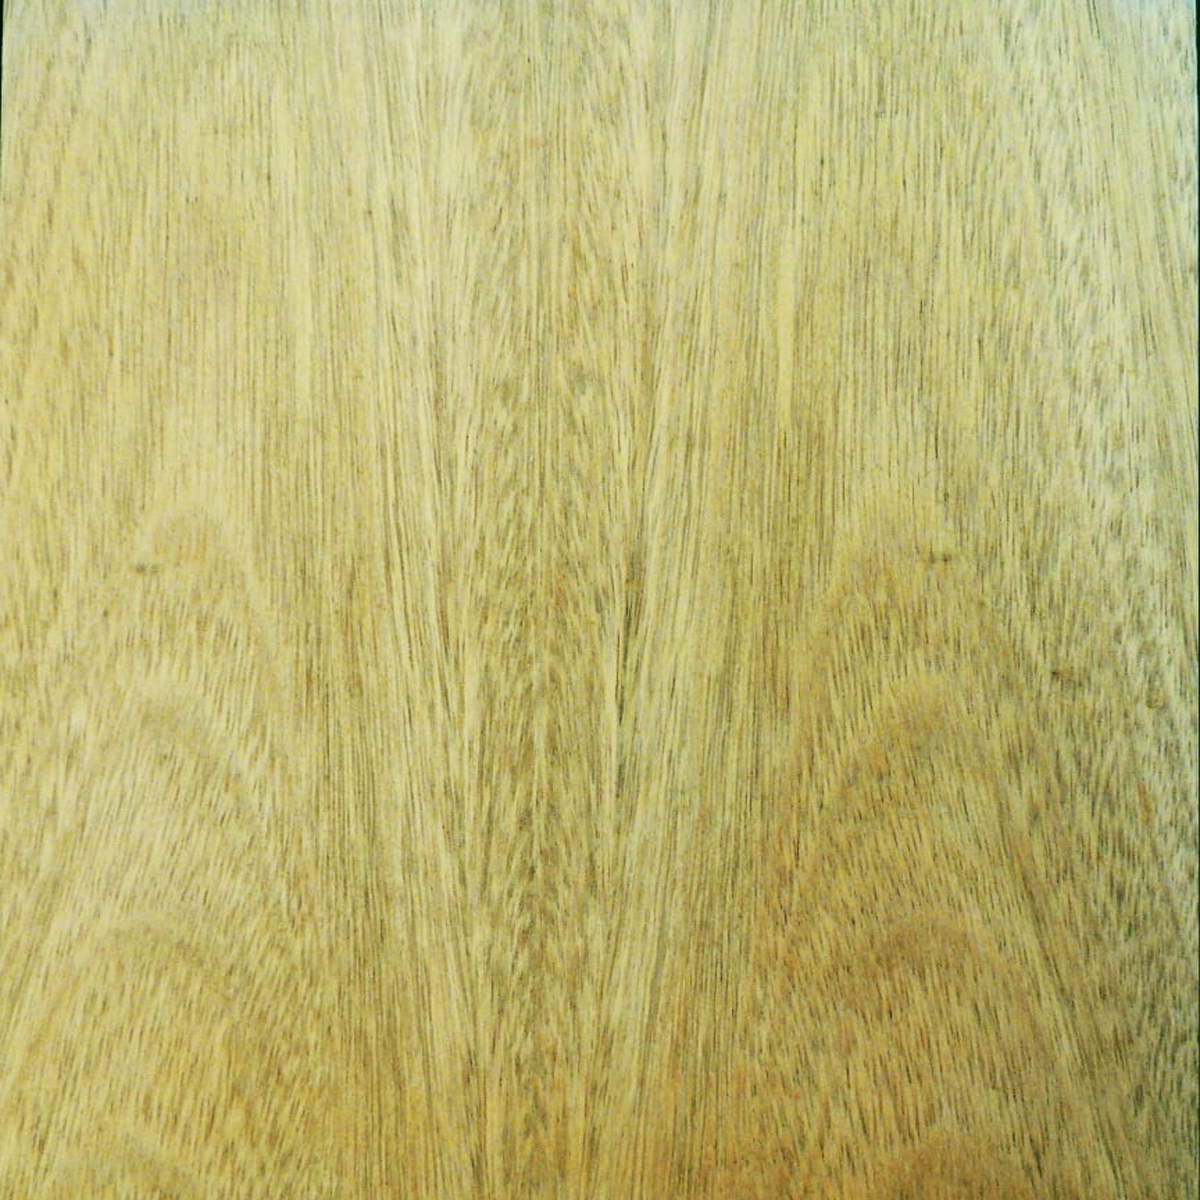 ENCHAPADO MDF 1C 3.6MM CEREJEIRA 1.83X2.60